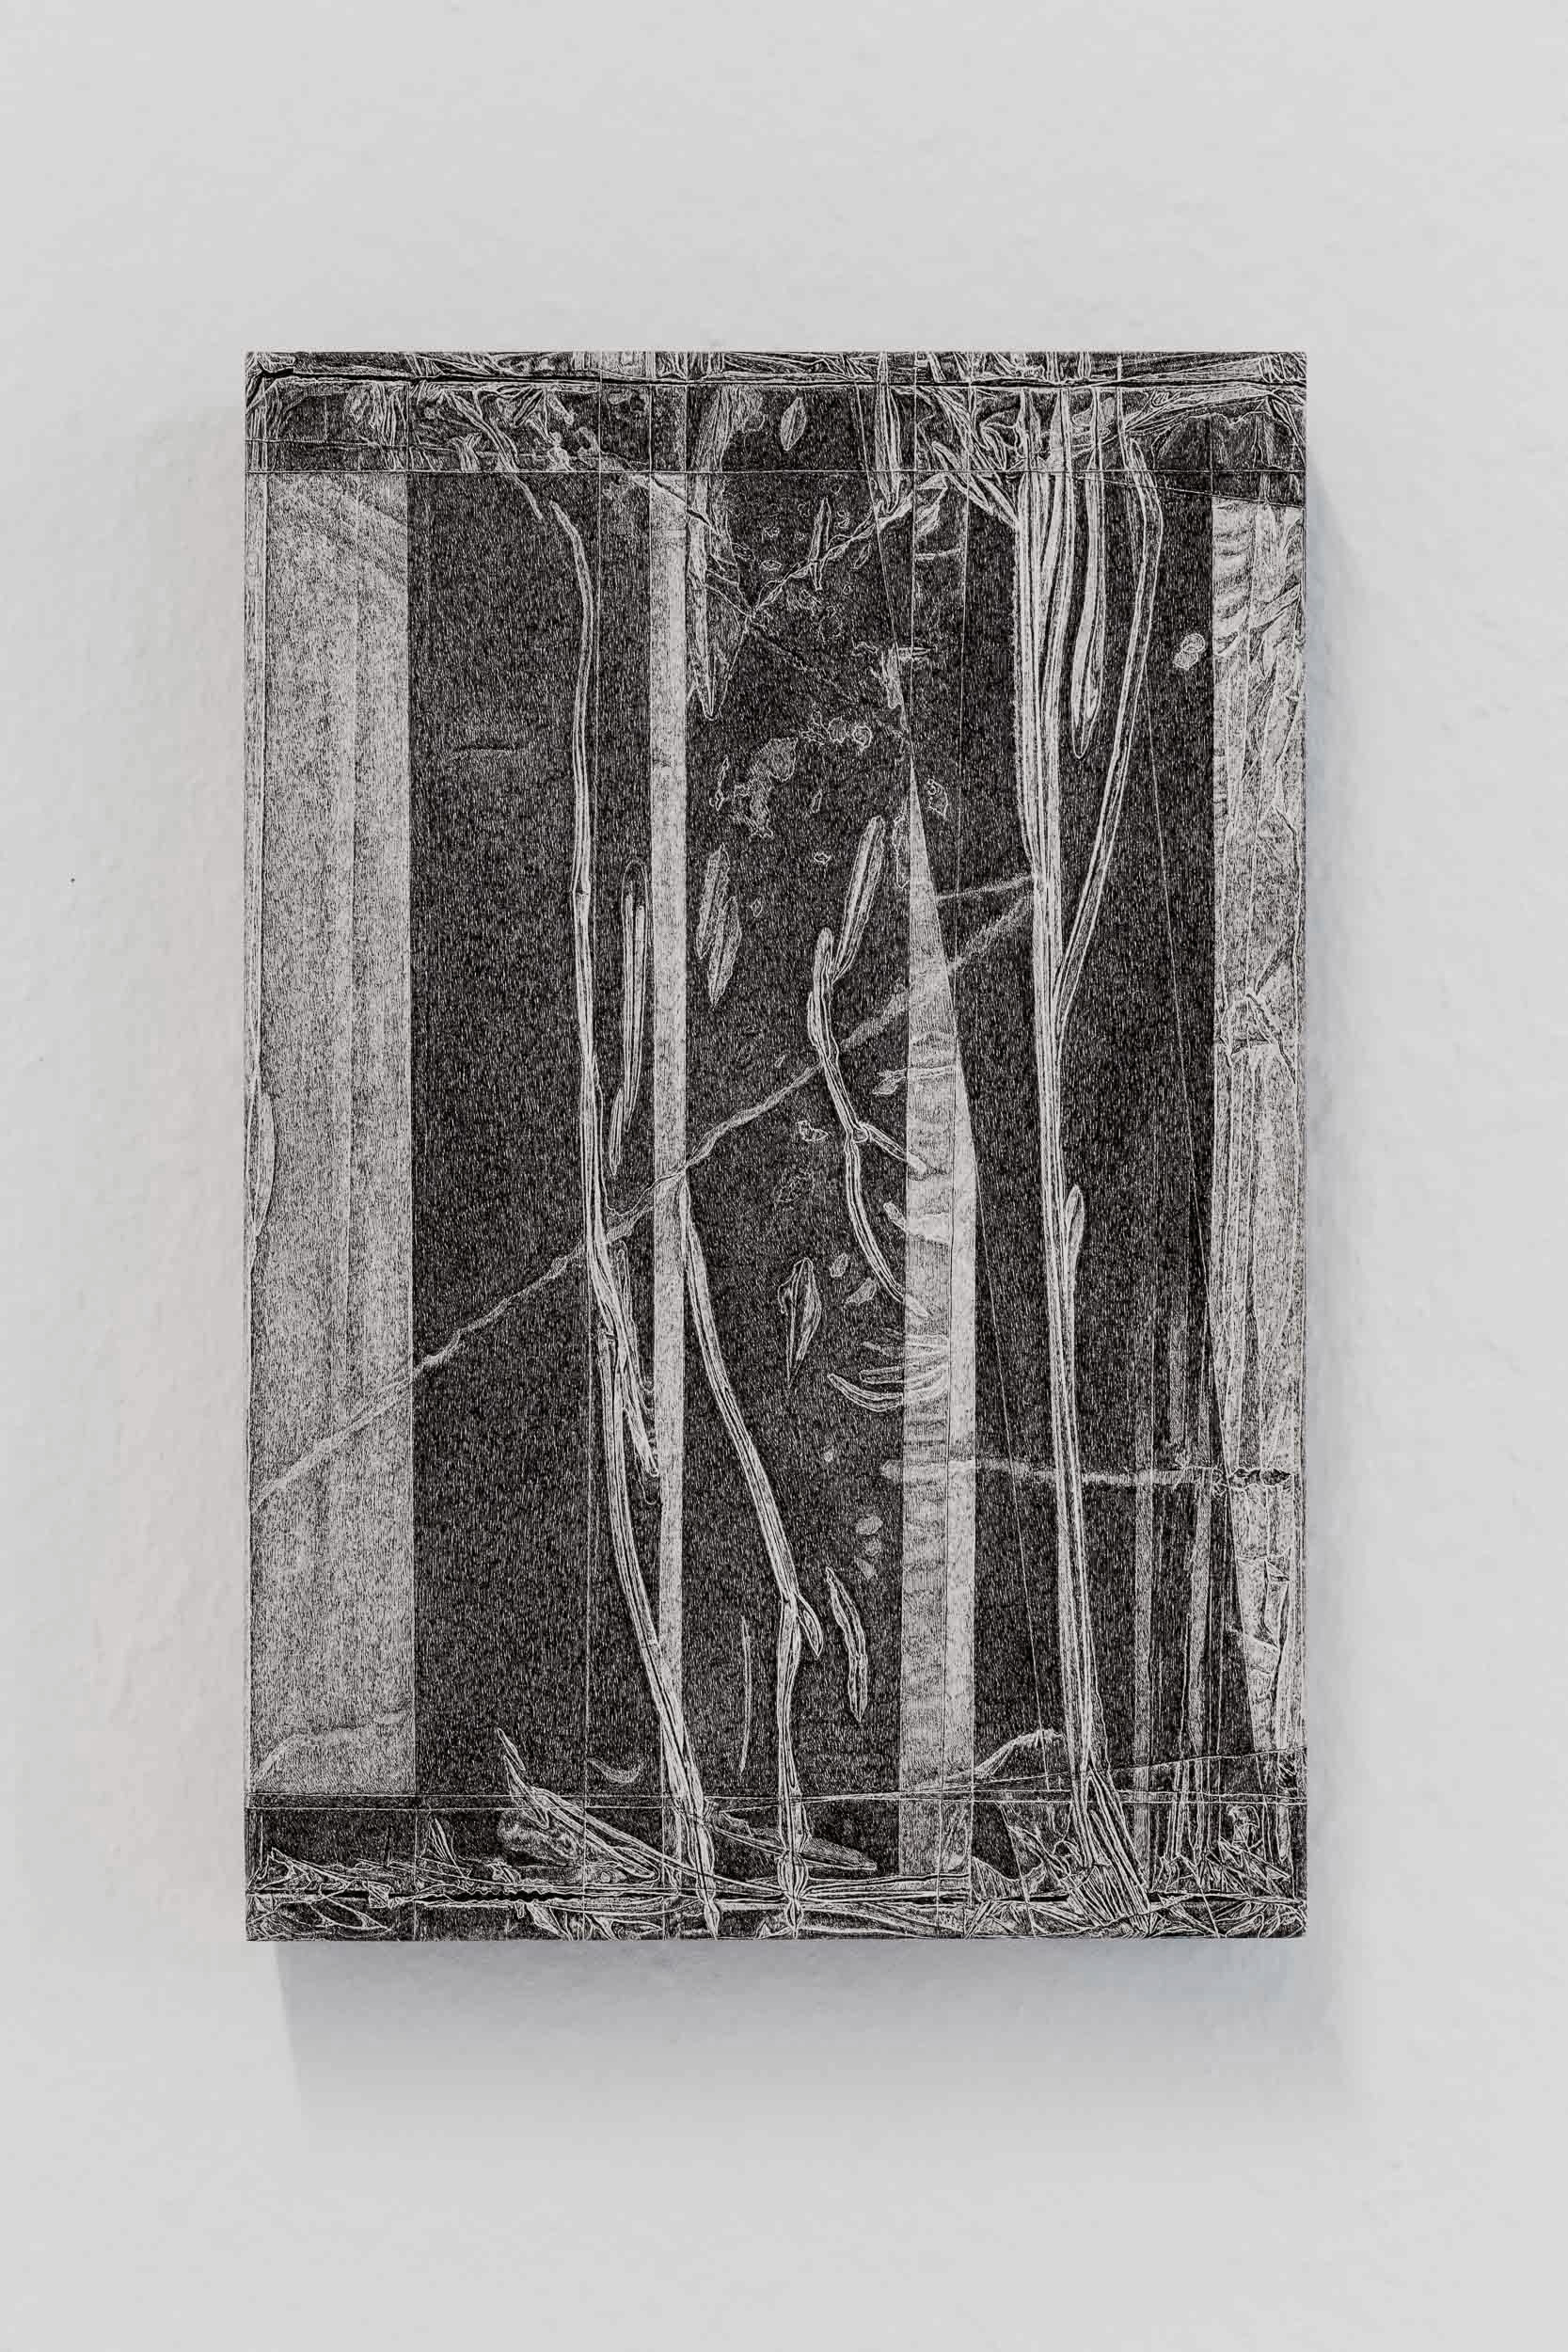 Kong Chun Hei, Parcel , 2018,Ink on paper mounted on wooden frame, 20 x 30 x 5cm